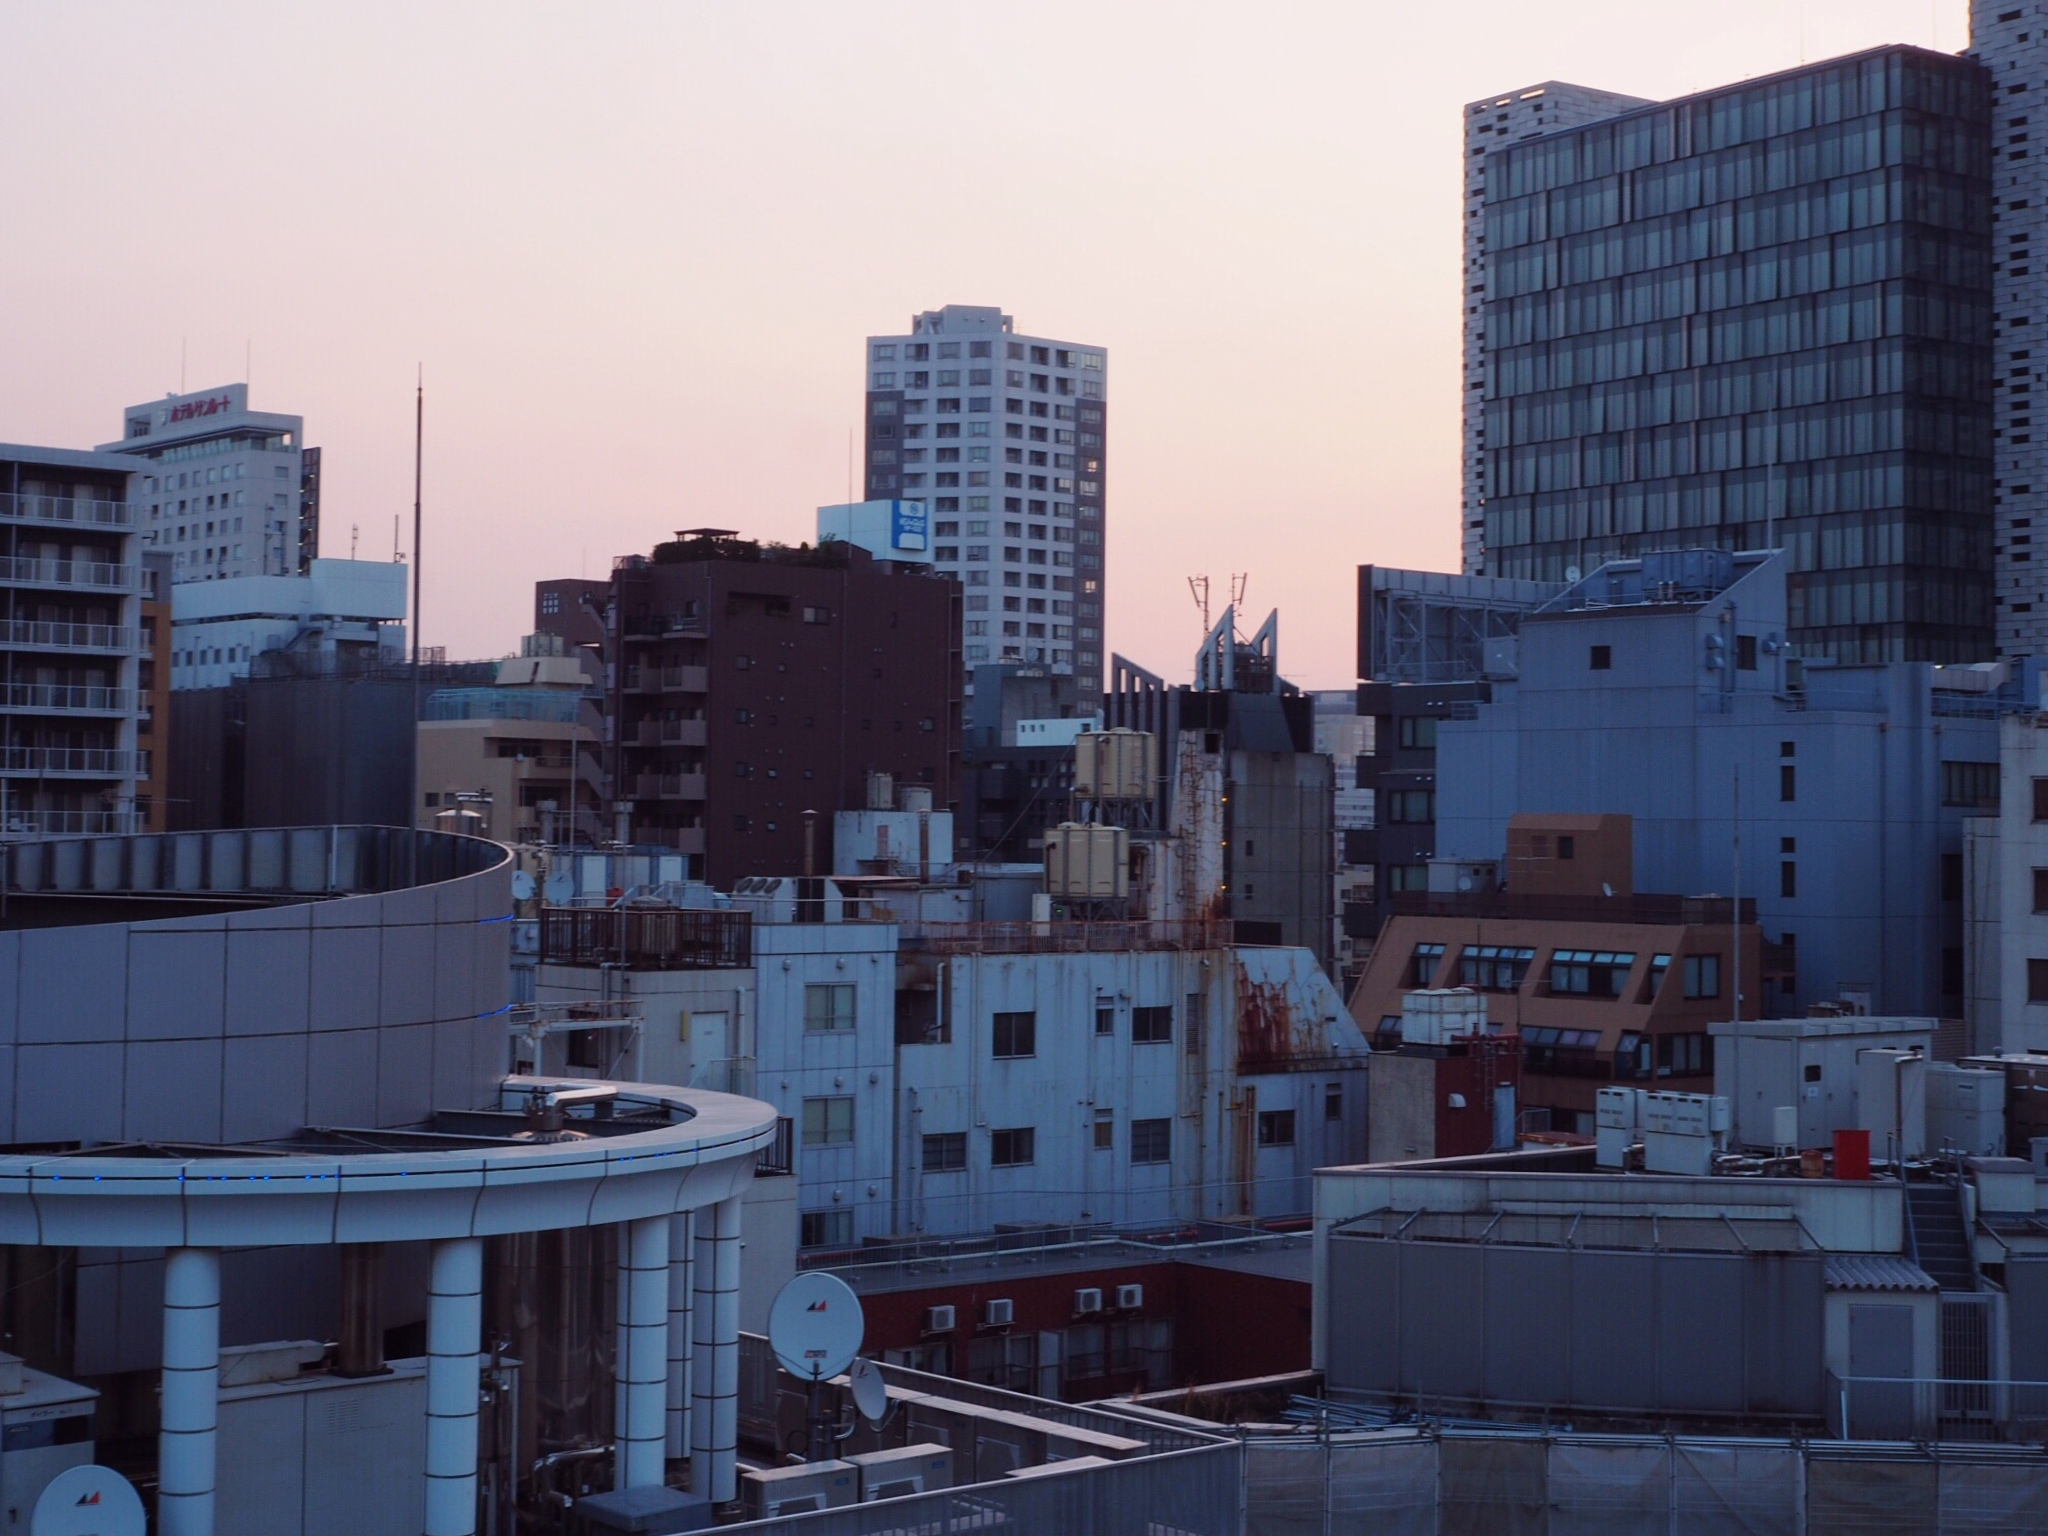 Sunrise in Shinjuku, aka jetlagged on day two. View from the balcony of our airbnb.